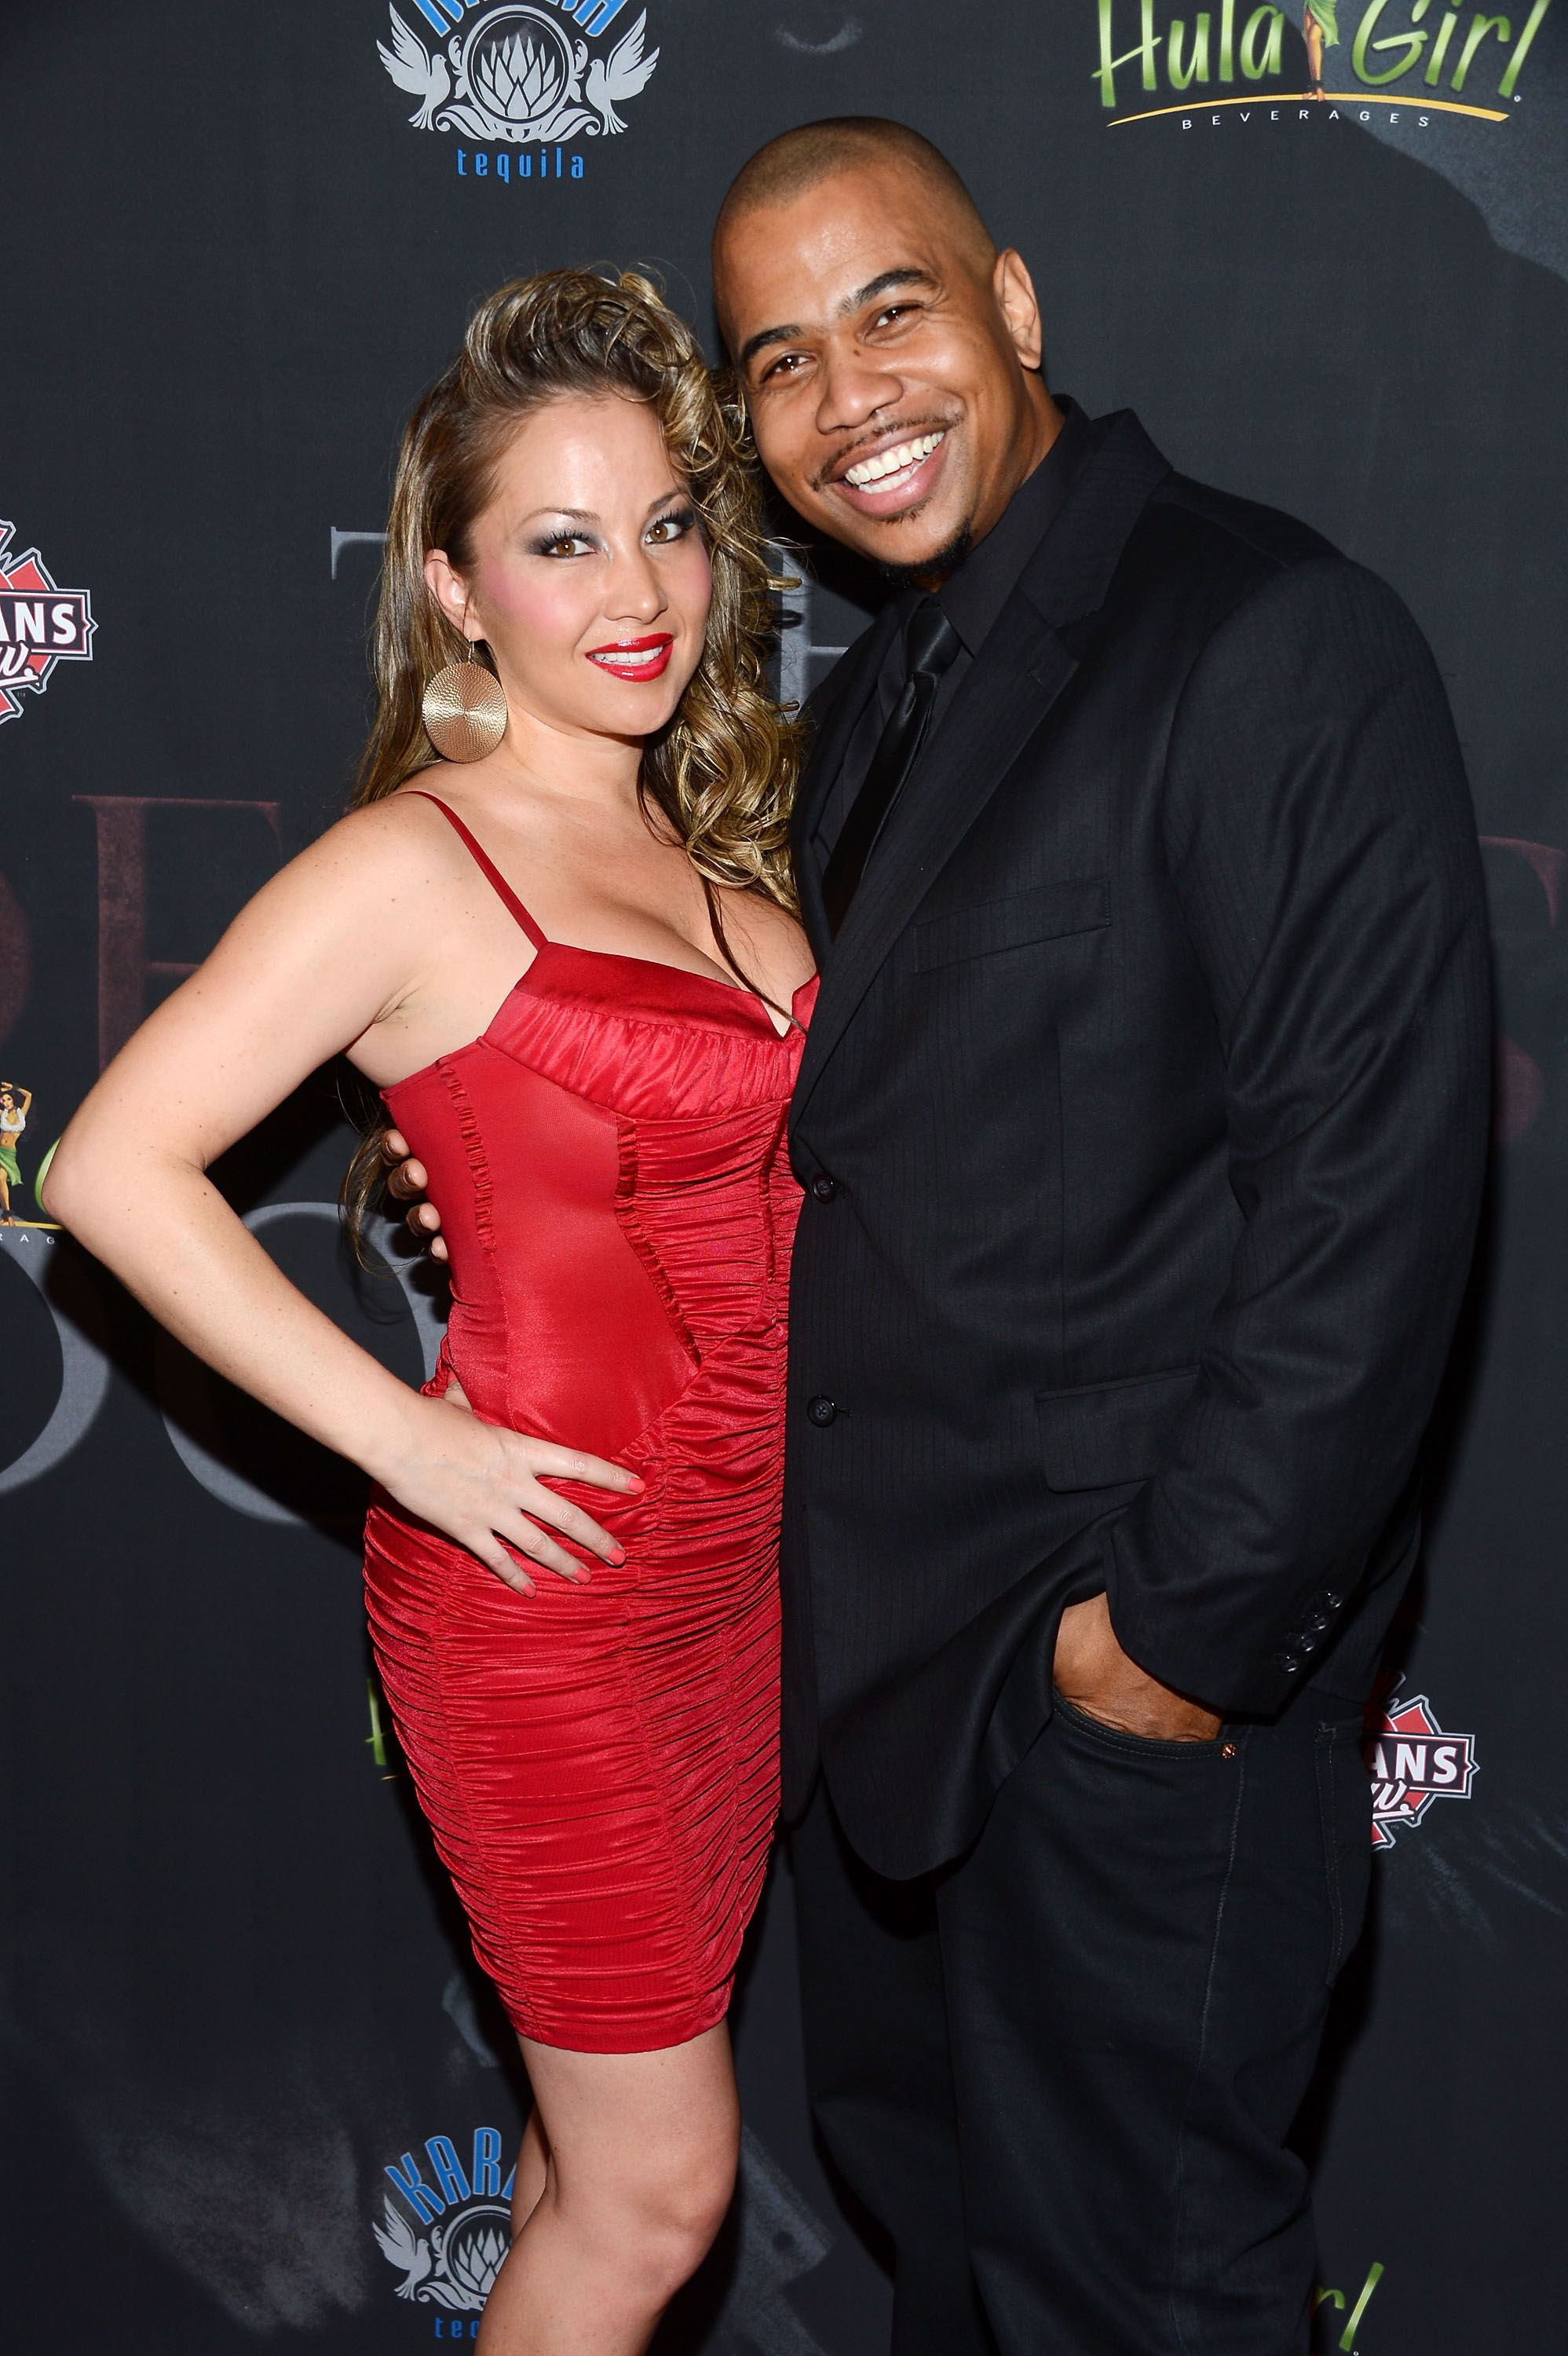 """Omar Gooding and Mia Vogel at """"The Devil's Dozen's"""" premiere in Hollywood/ Source: Getty Images"""